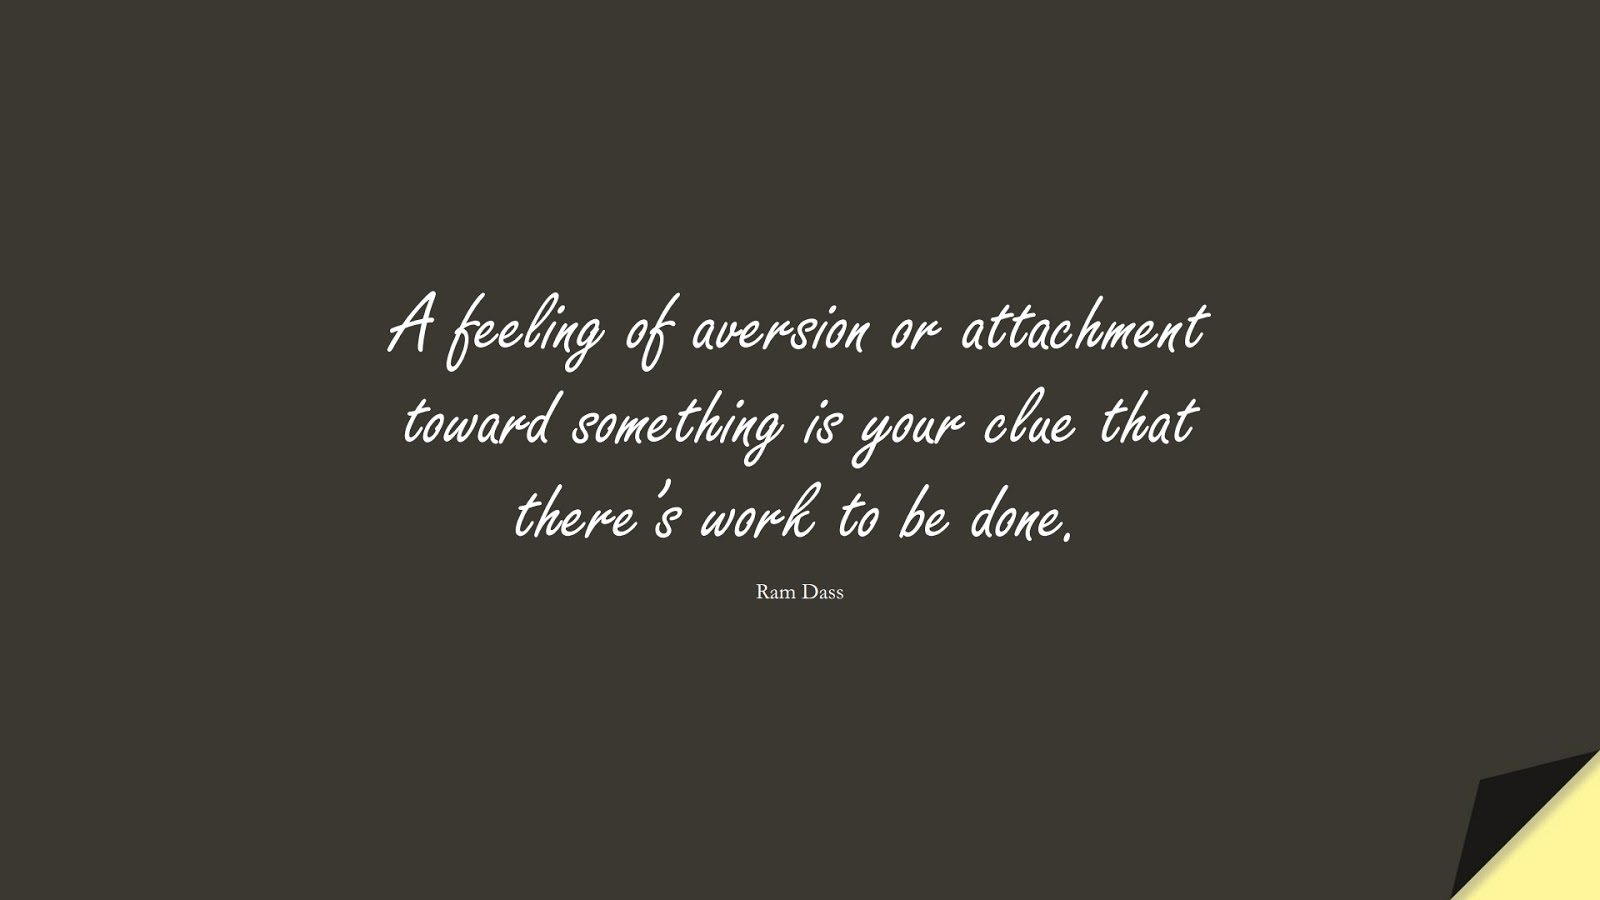 A feeling of aversion or attachment toward something is your clue that there's work to be done. (Ram Dass);  #BeingStrongQuotes